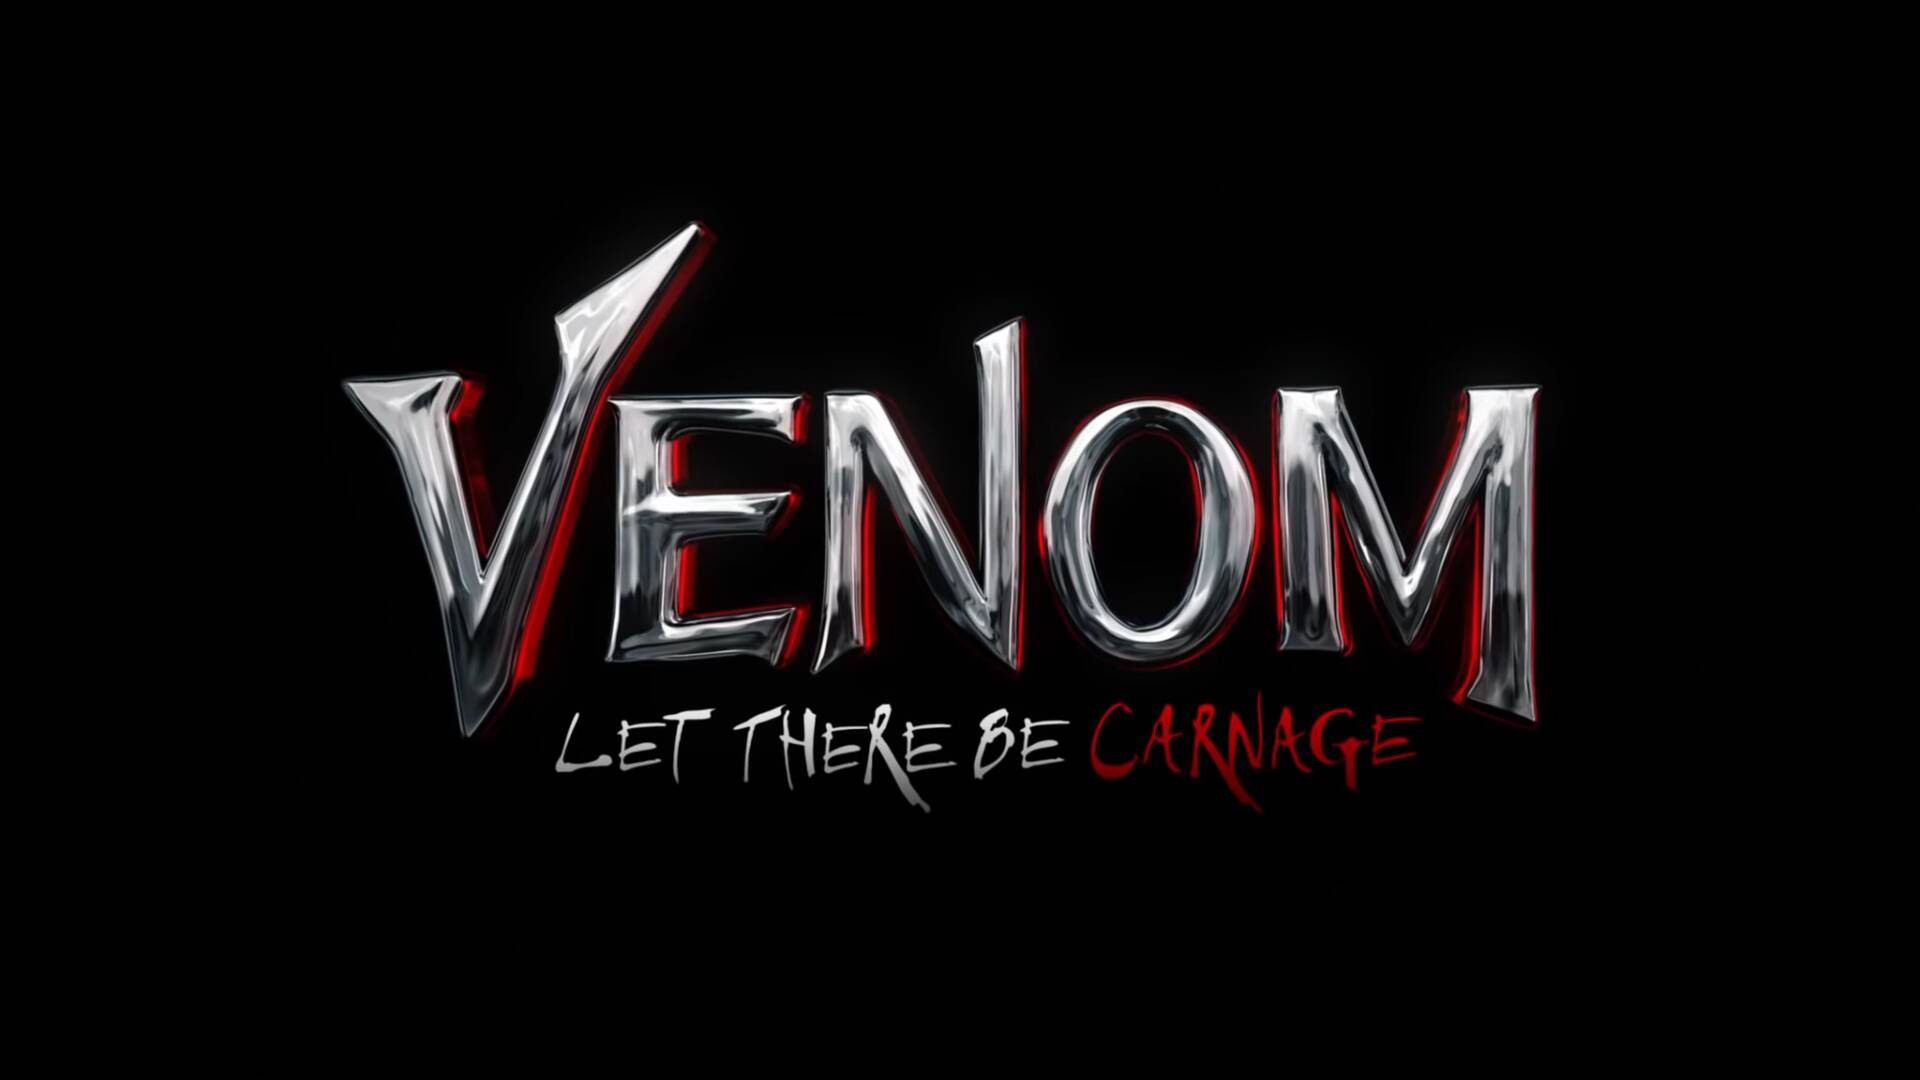 Venom: Let There Be Carnage logo